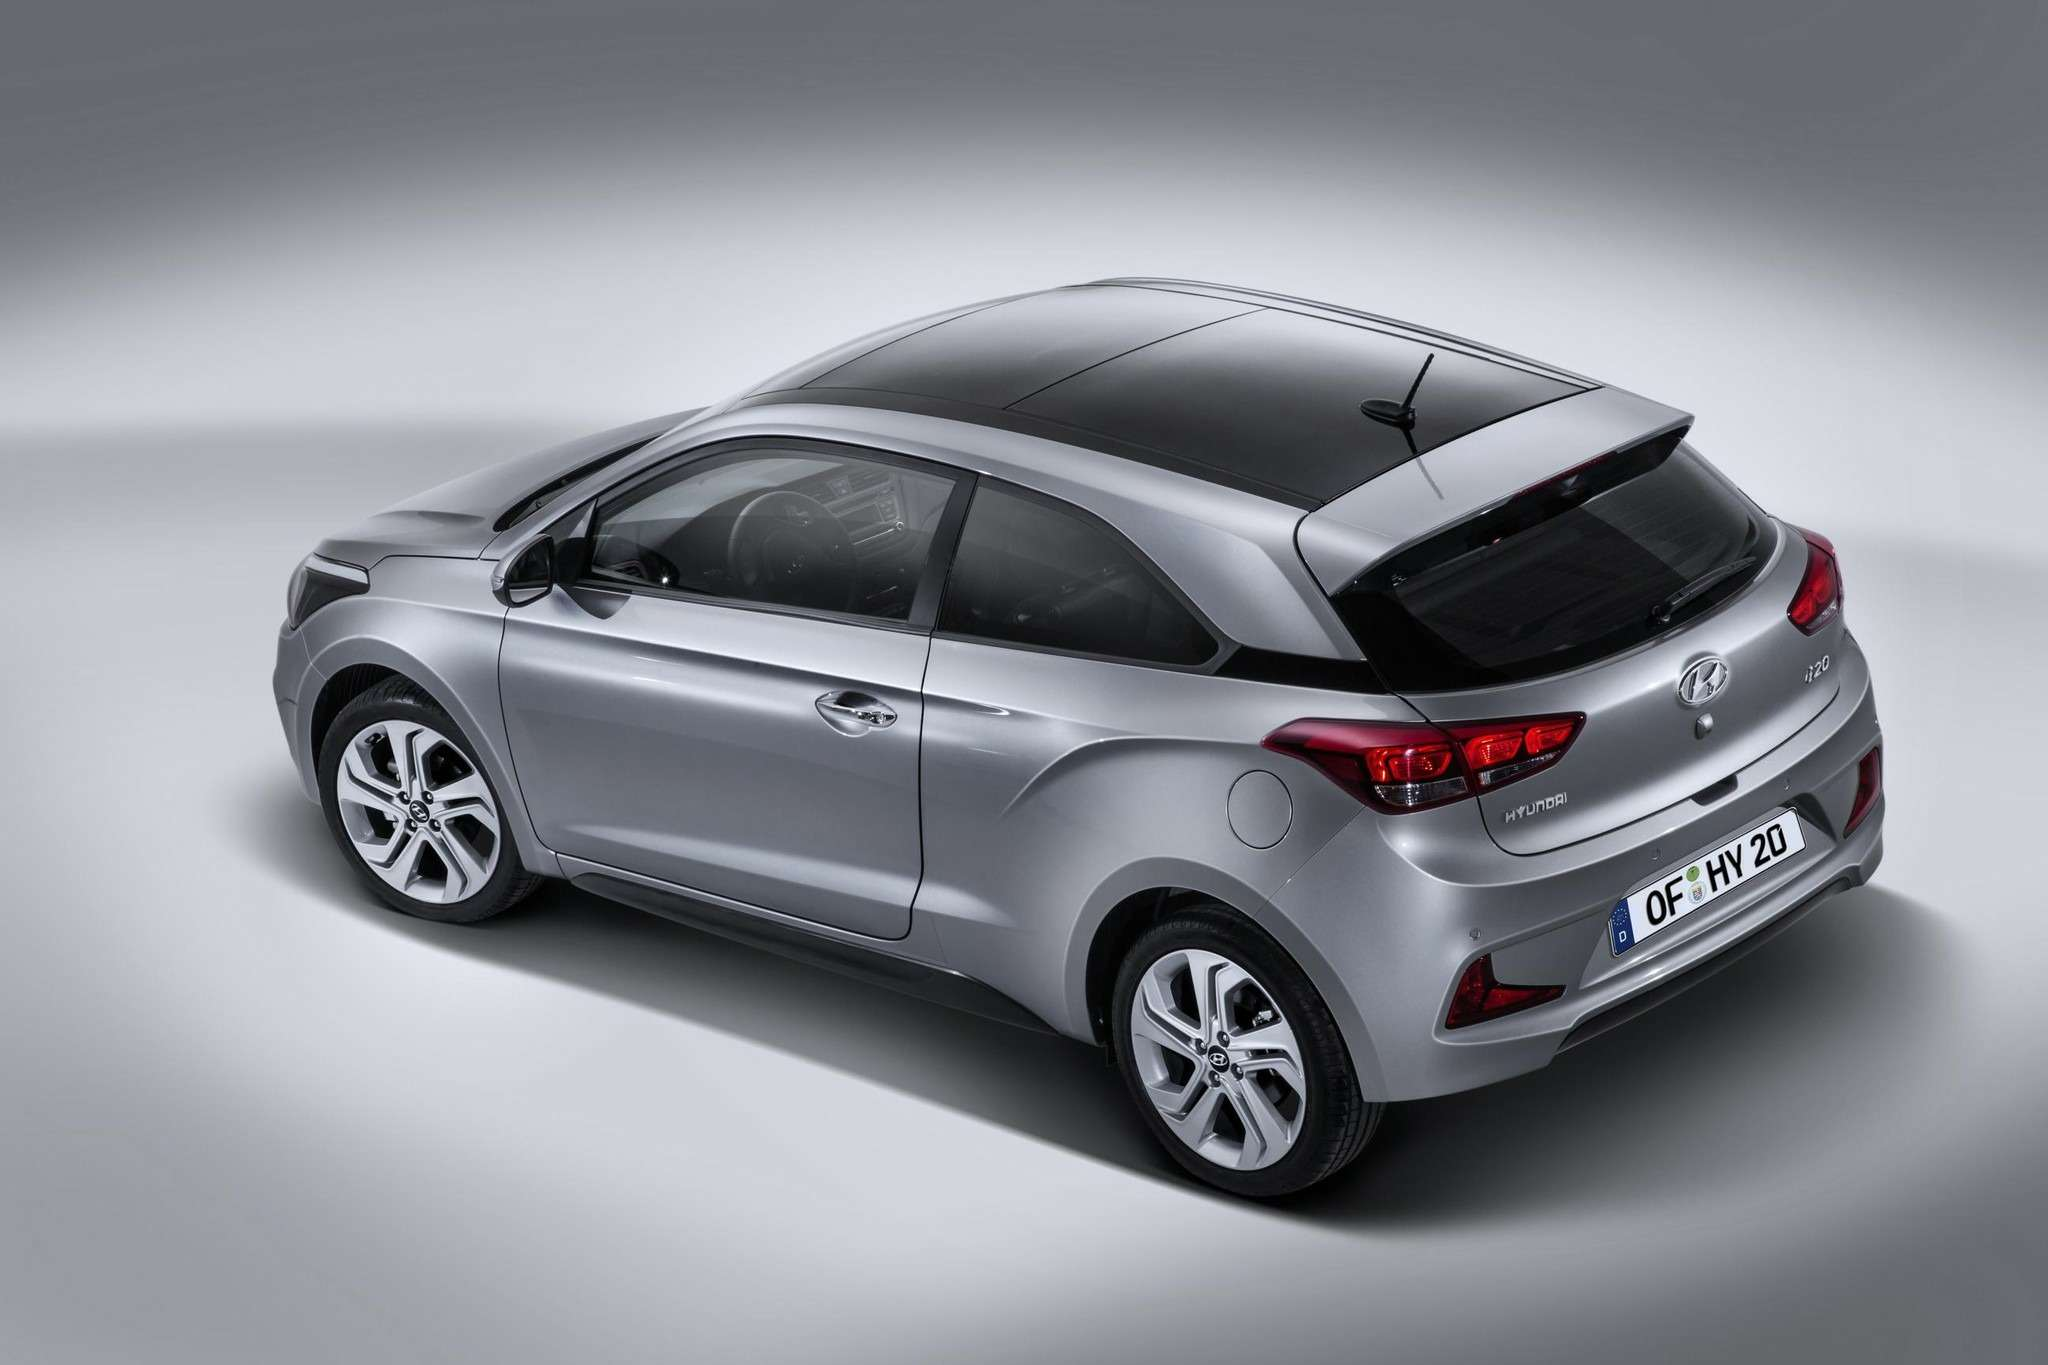 hyundai-officially-unveils-i20-coupe-with-unique-design-photo-gallery_4